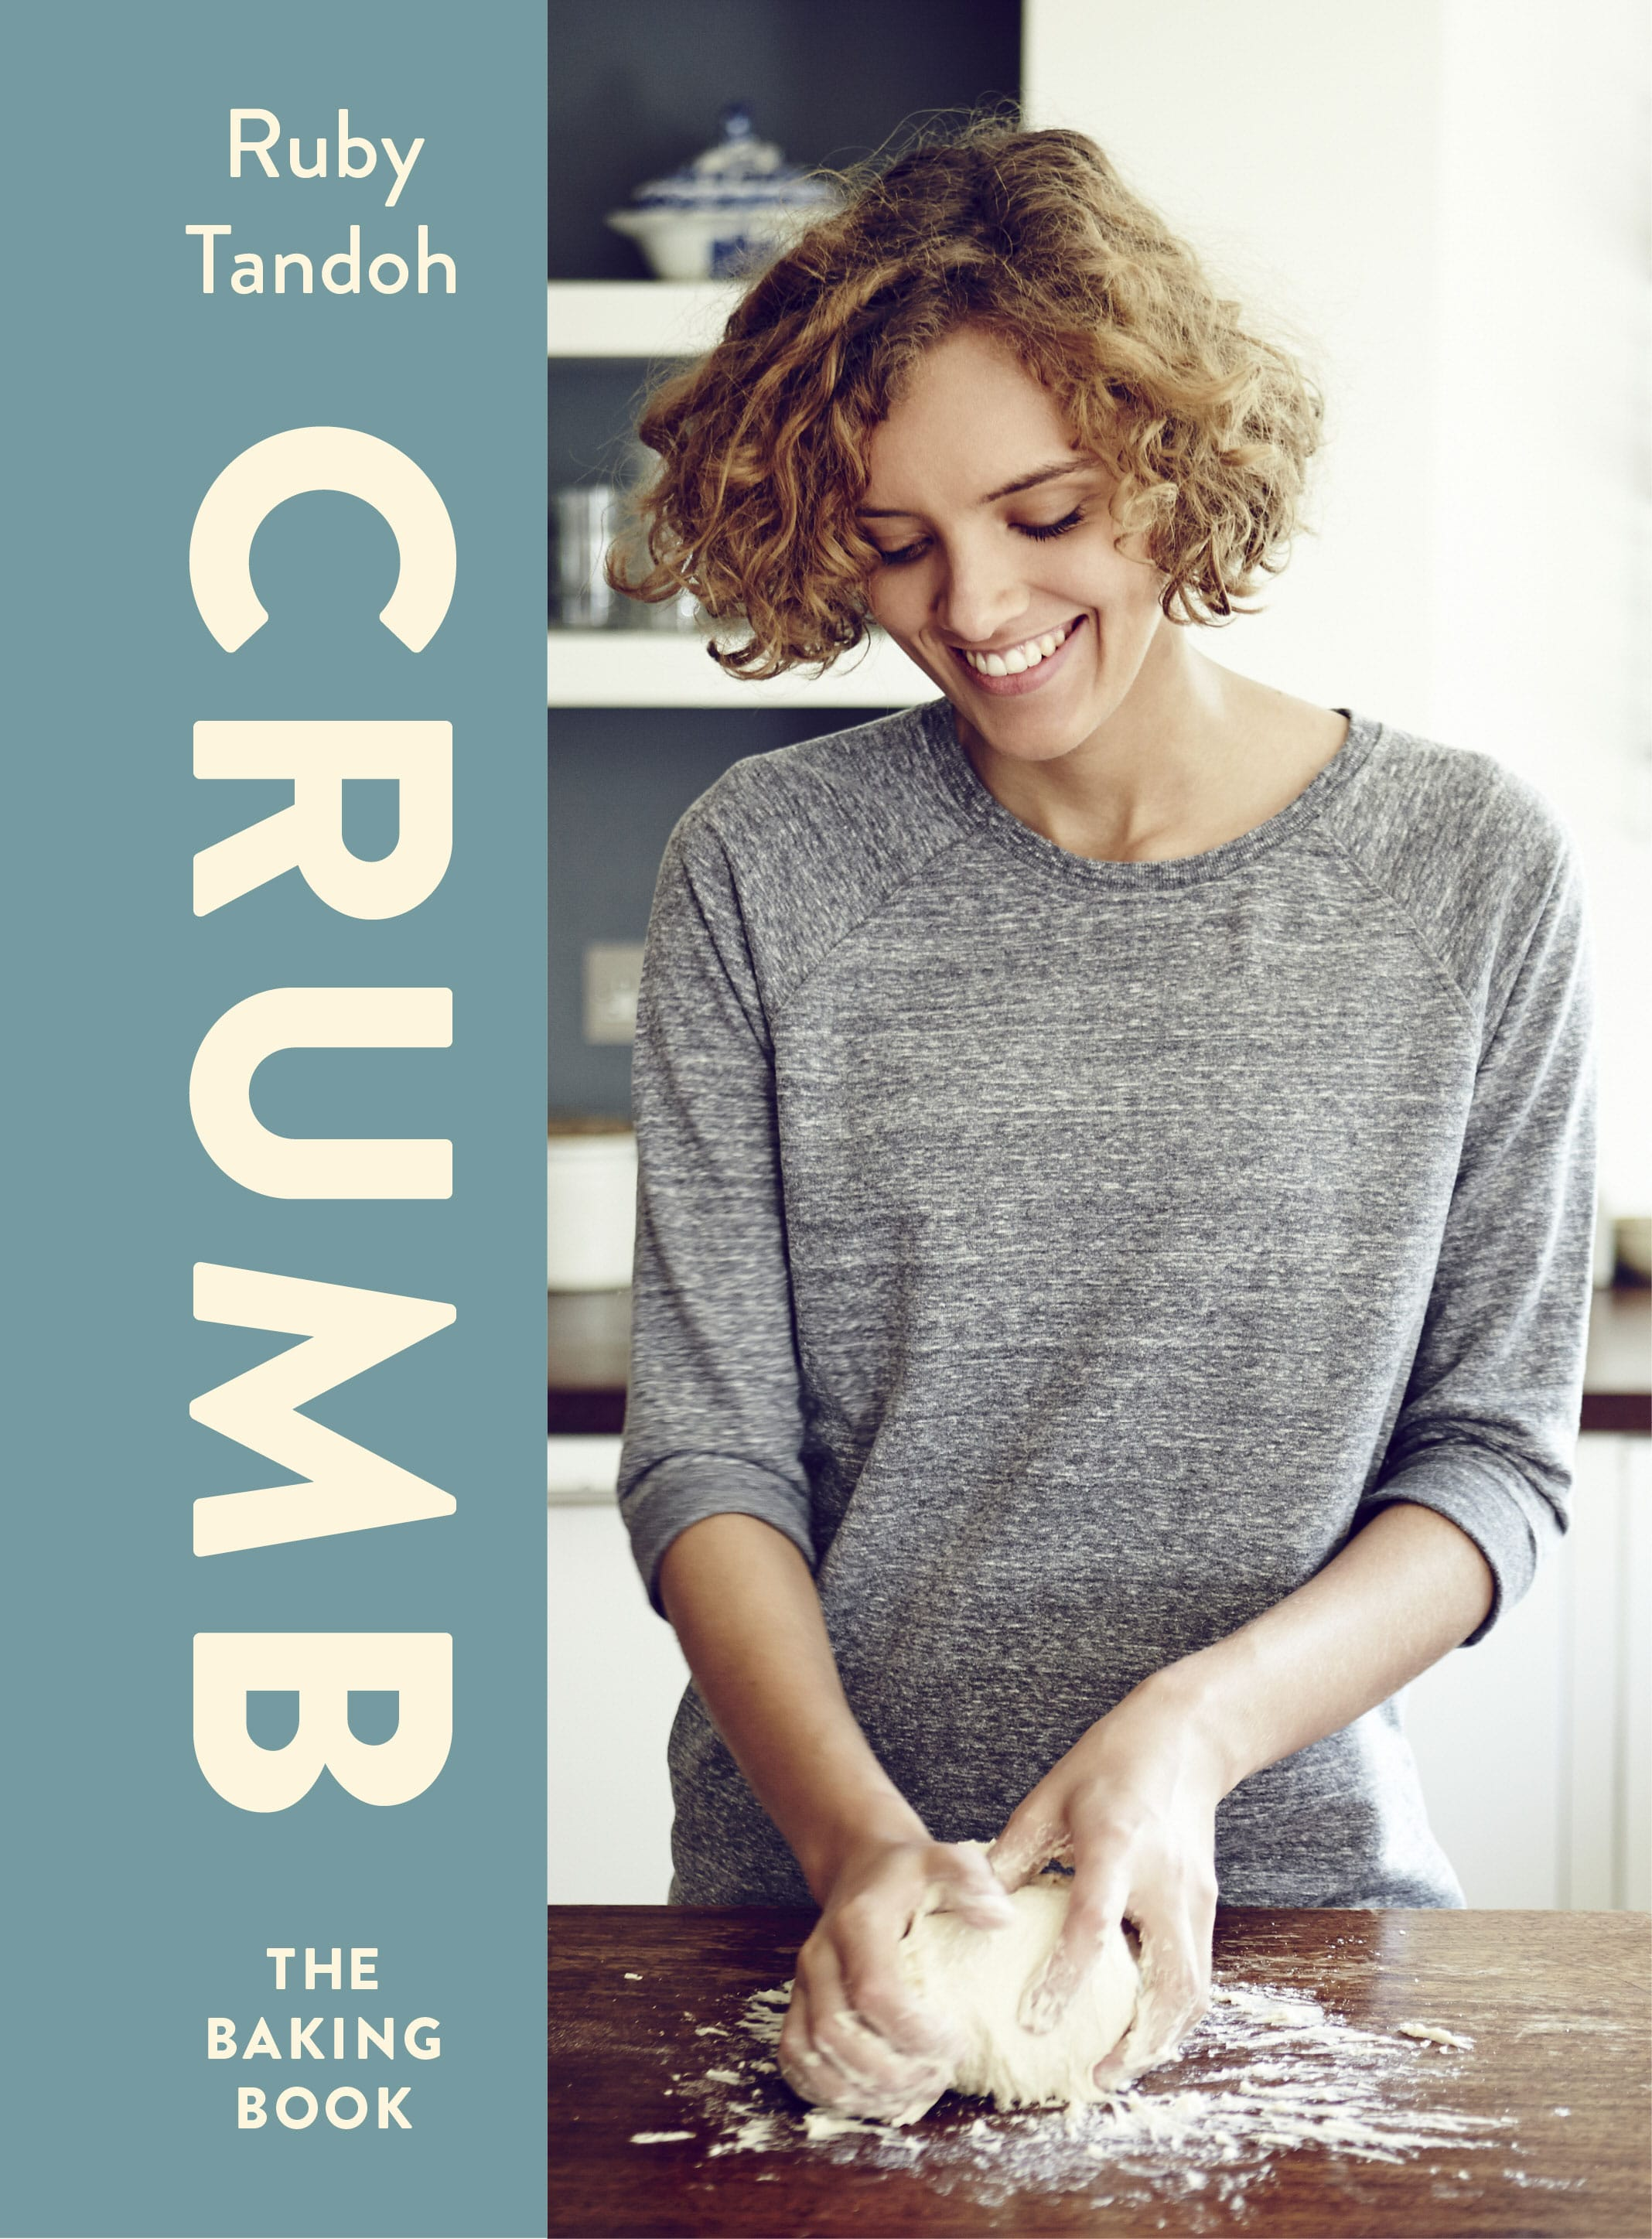 Win a copy of 'Crumb' by Ruby Tandoh